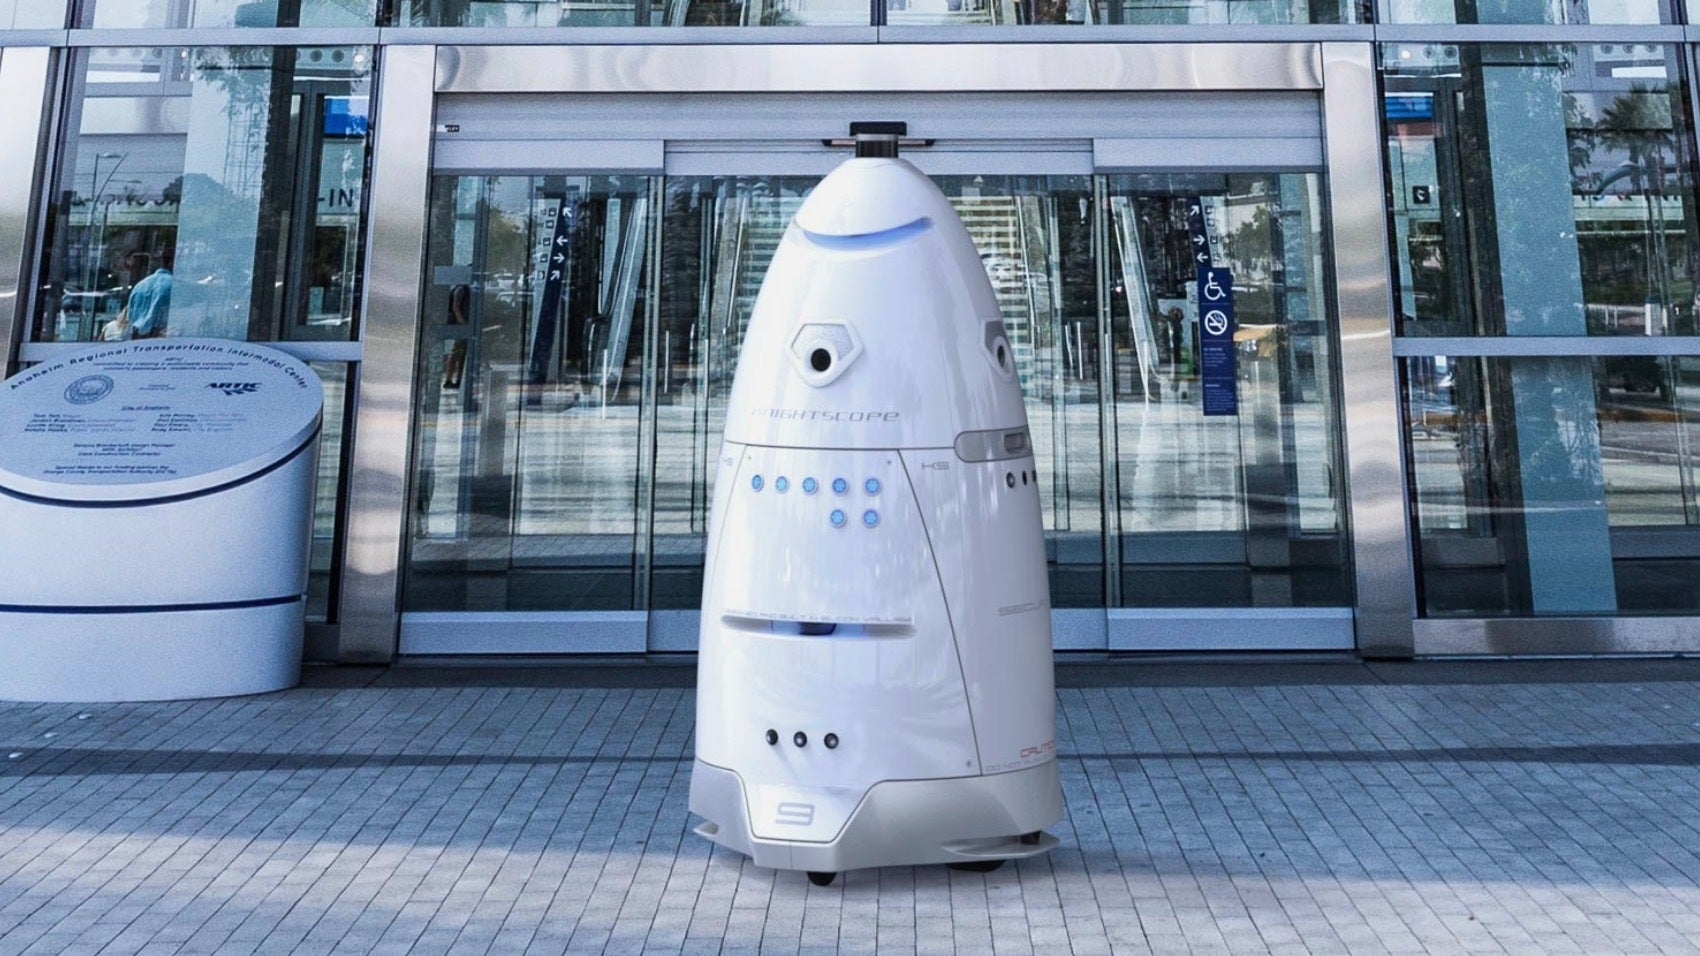 The Solution To Homelessness Won't Be Robot Cops